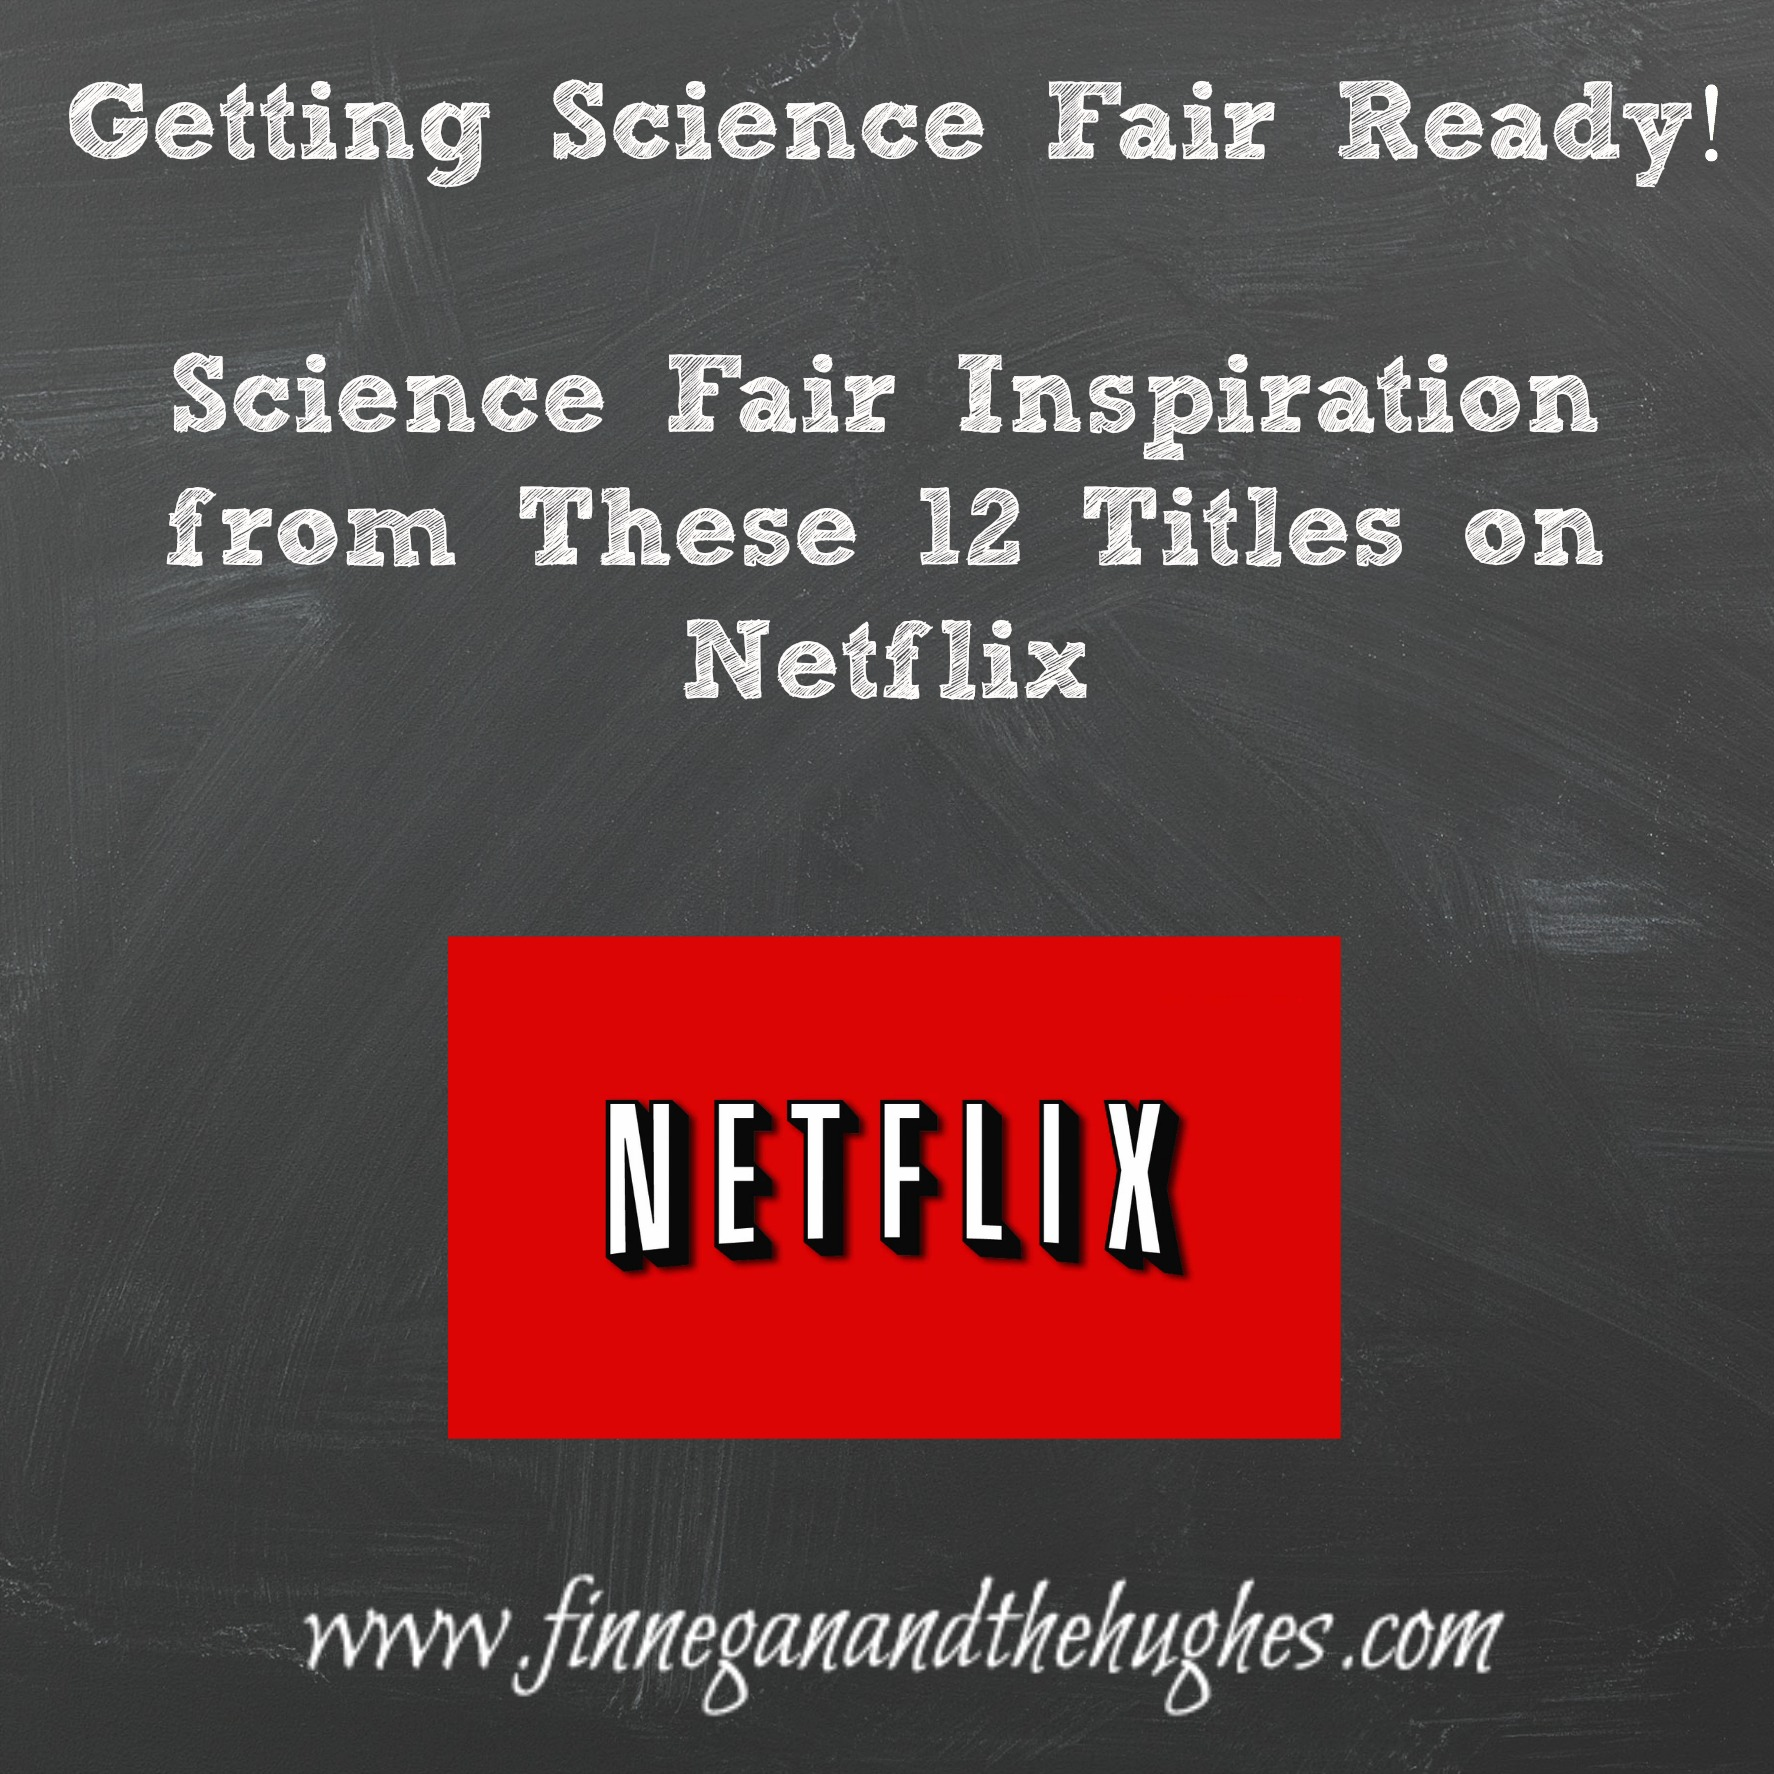 Science Fair Inspiration